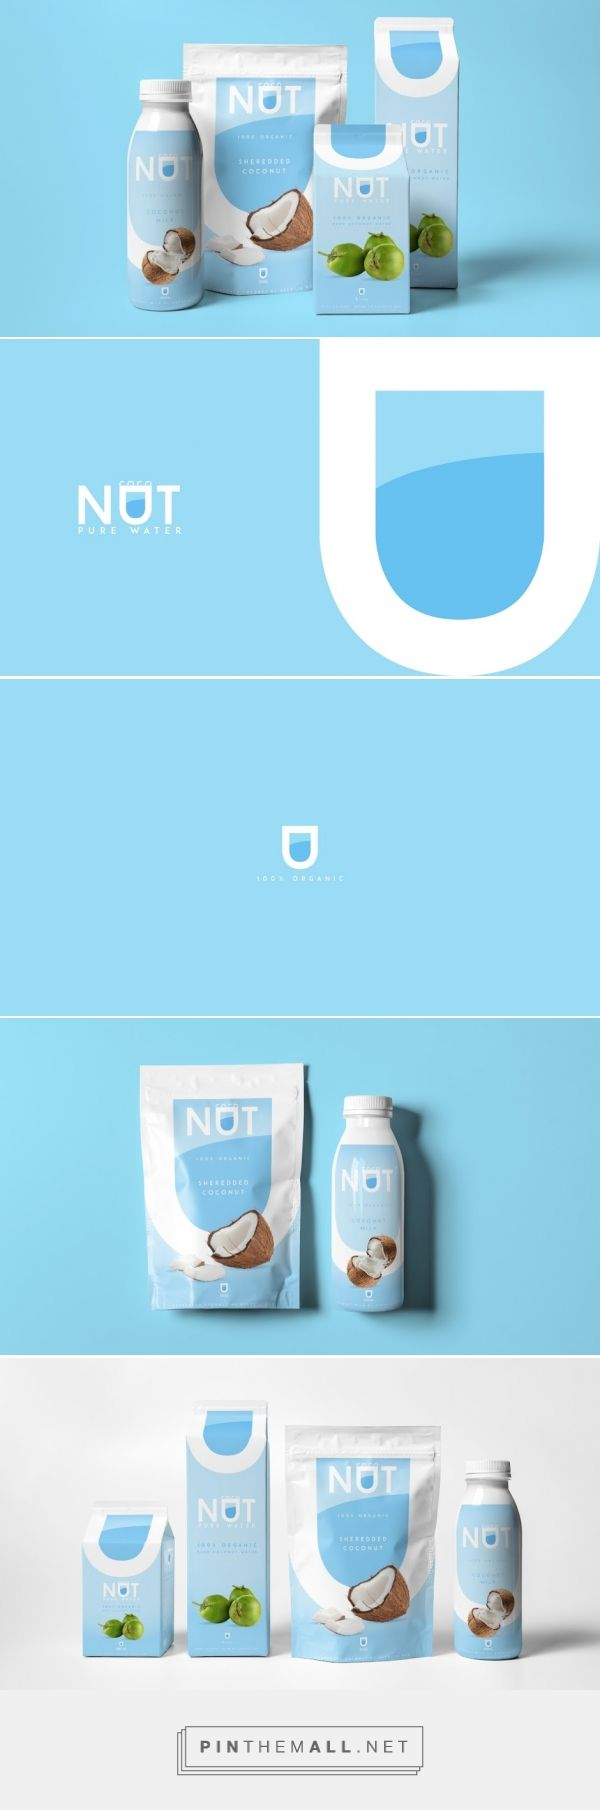 Coconut Pure Water Concept Packaging Design by Agência BUD (Brazil) - http://www.packagingoftheworld.com/2016/05/coconut-pure-water-concept.html